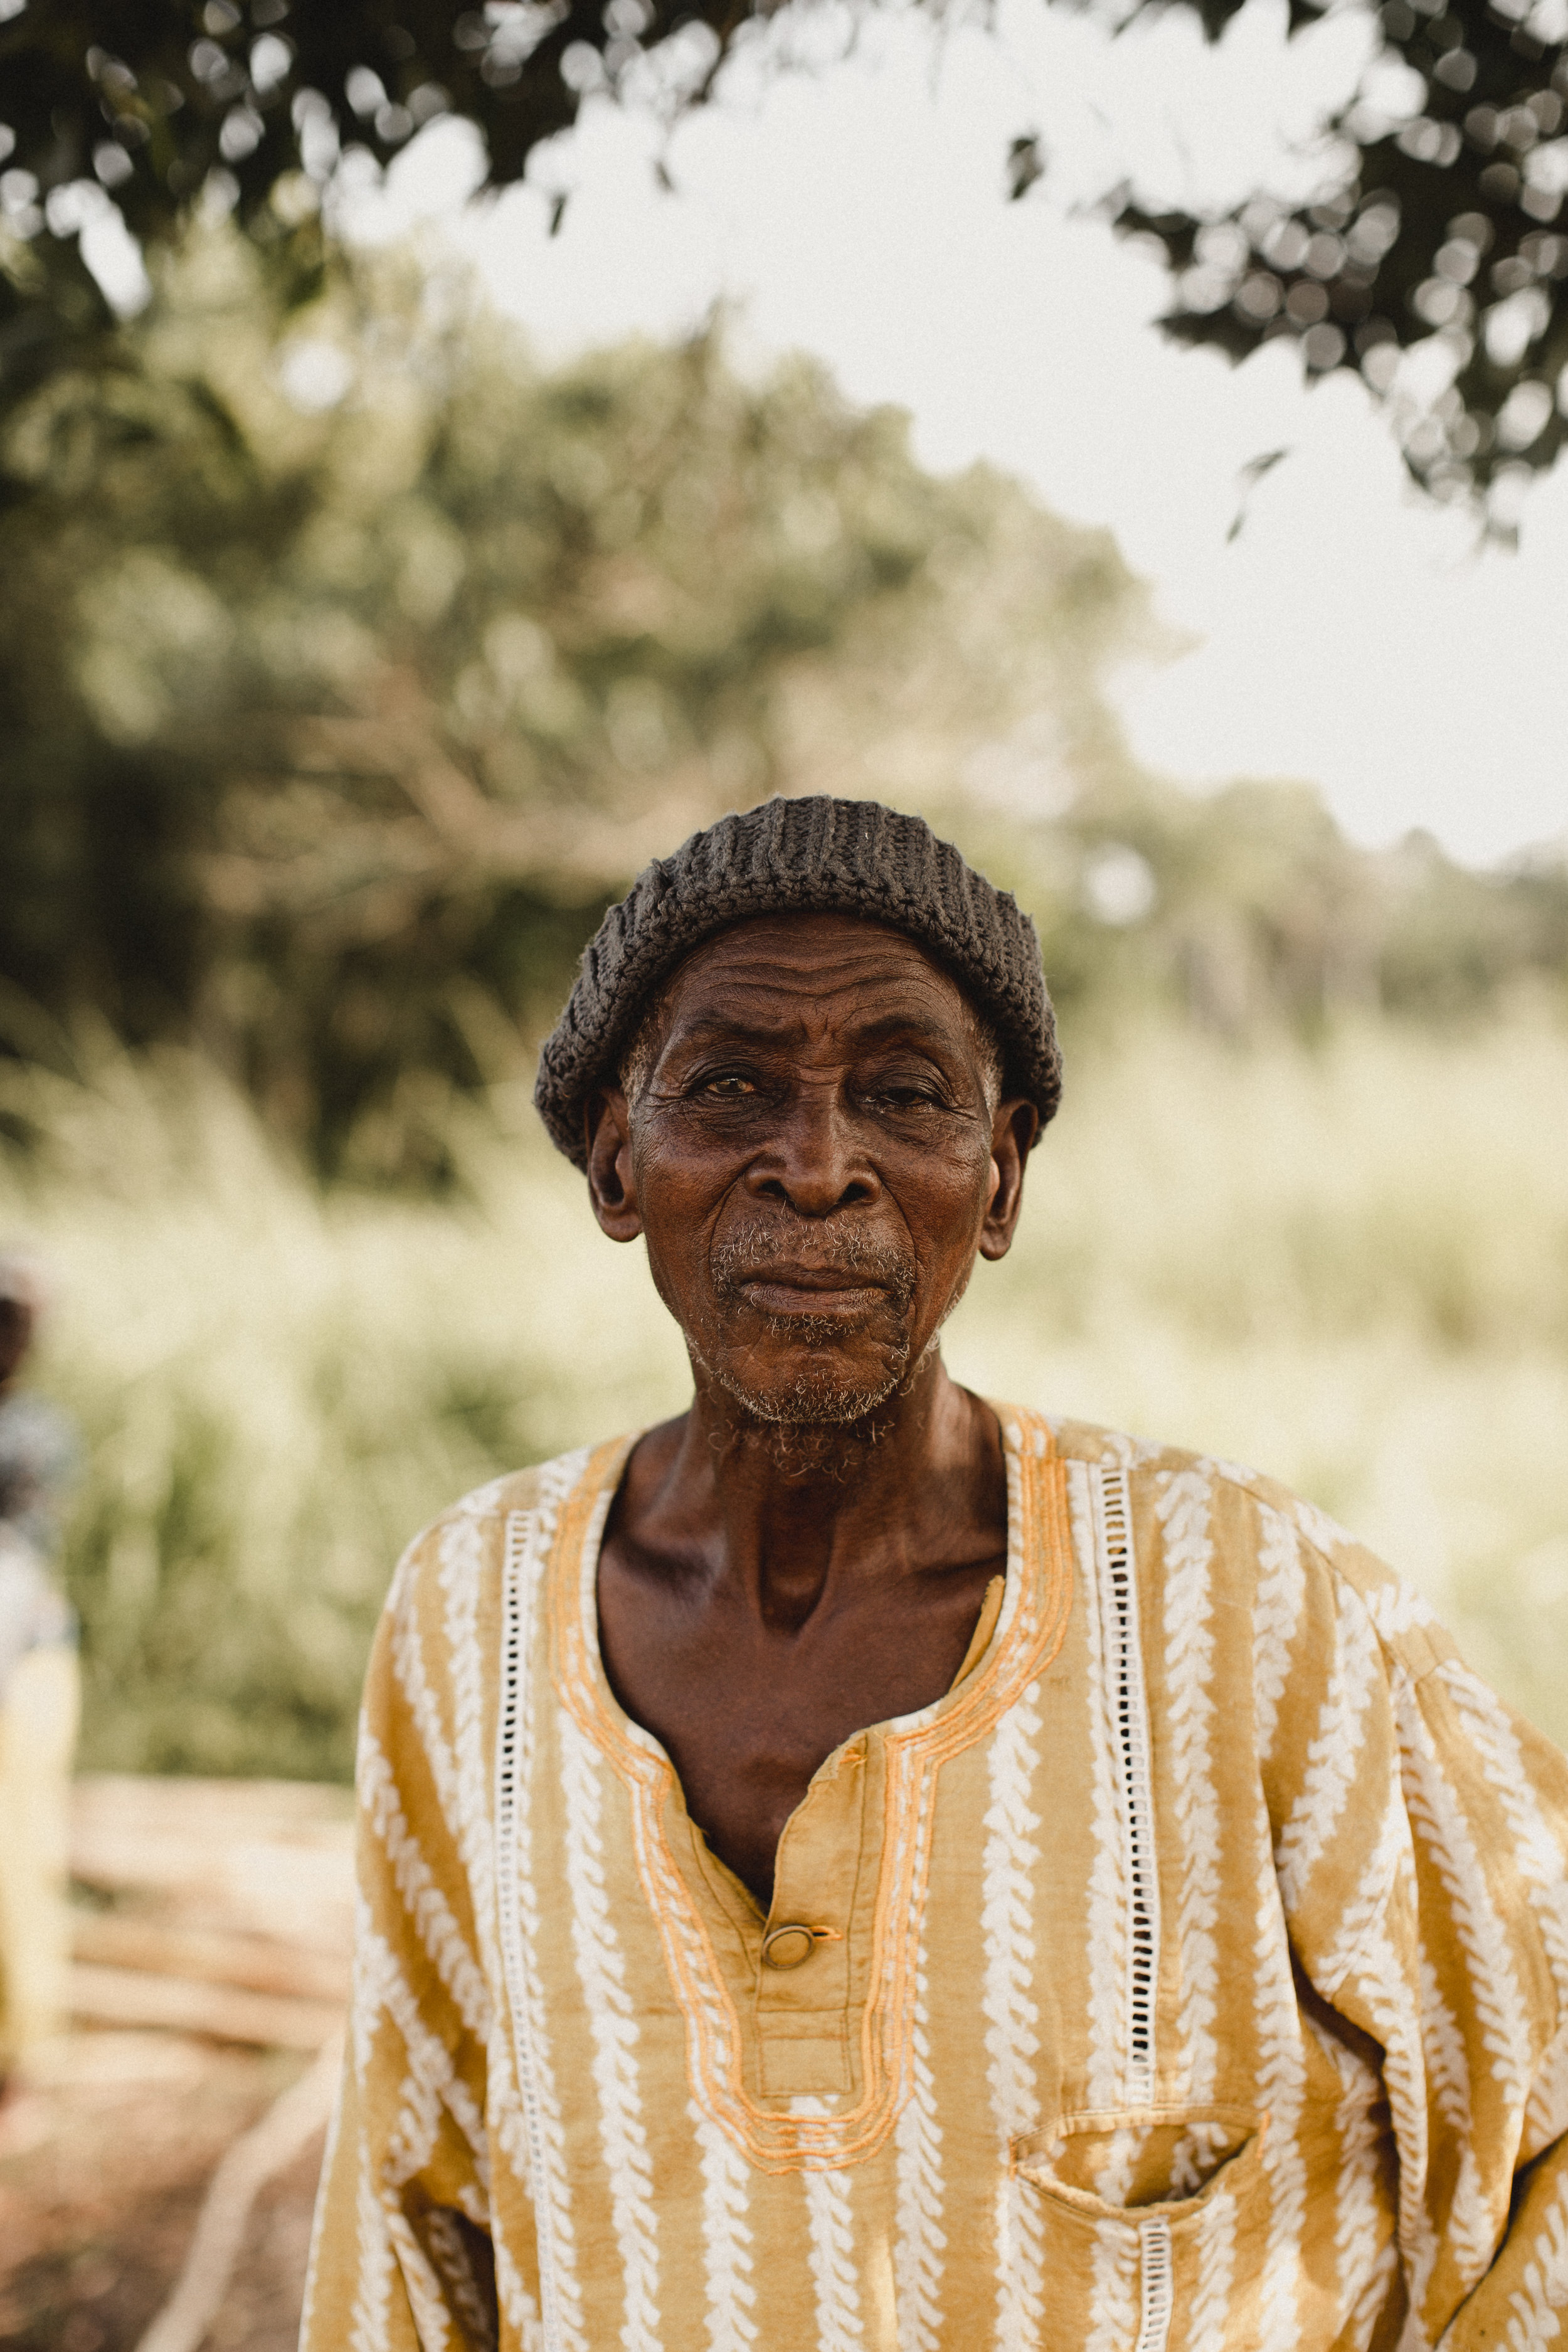 a local man in a village we visited. i quickly snapped this photo of him whilst walking back to the car. we exchanged no words, but i showed him the photo and he smiled. and that's all i needed.